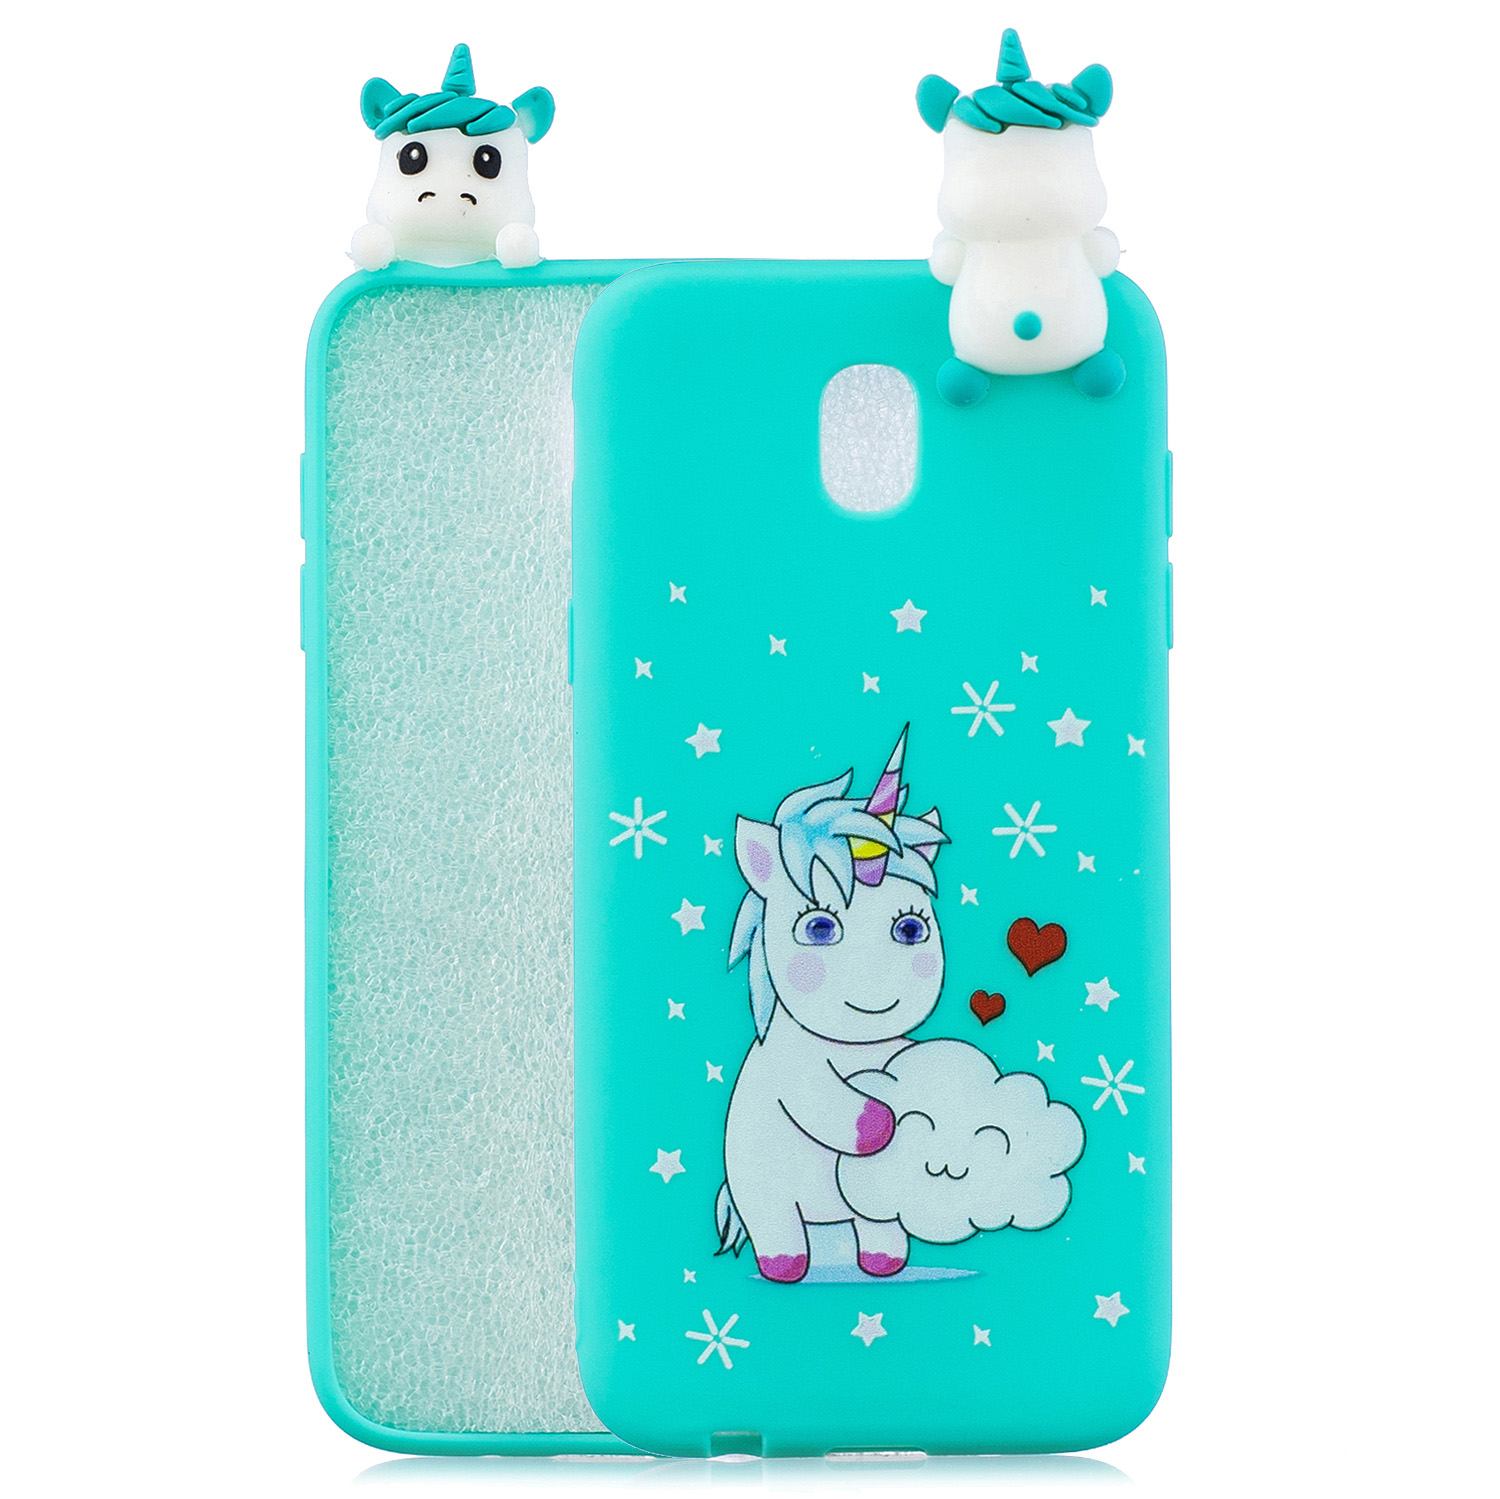 For Redmi 8A 3D Cartoon Painting Back Cover Soft TPU Mobile Phone Case Shell Love Unicorn